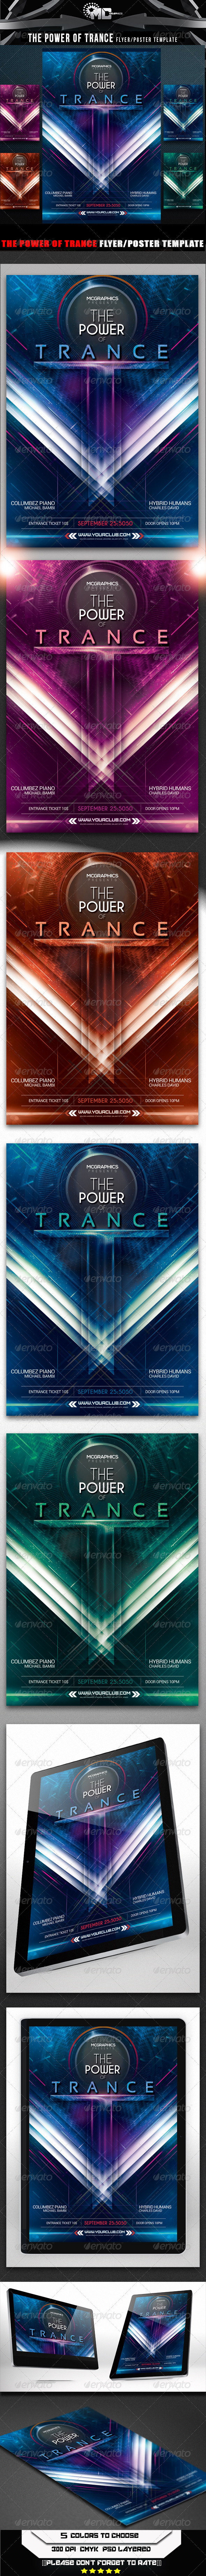 The Power of Trance Flyer Poster Template